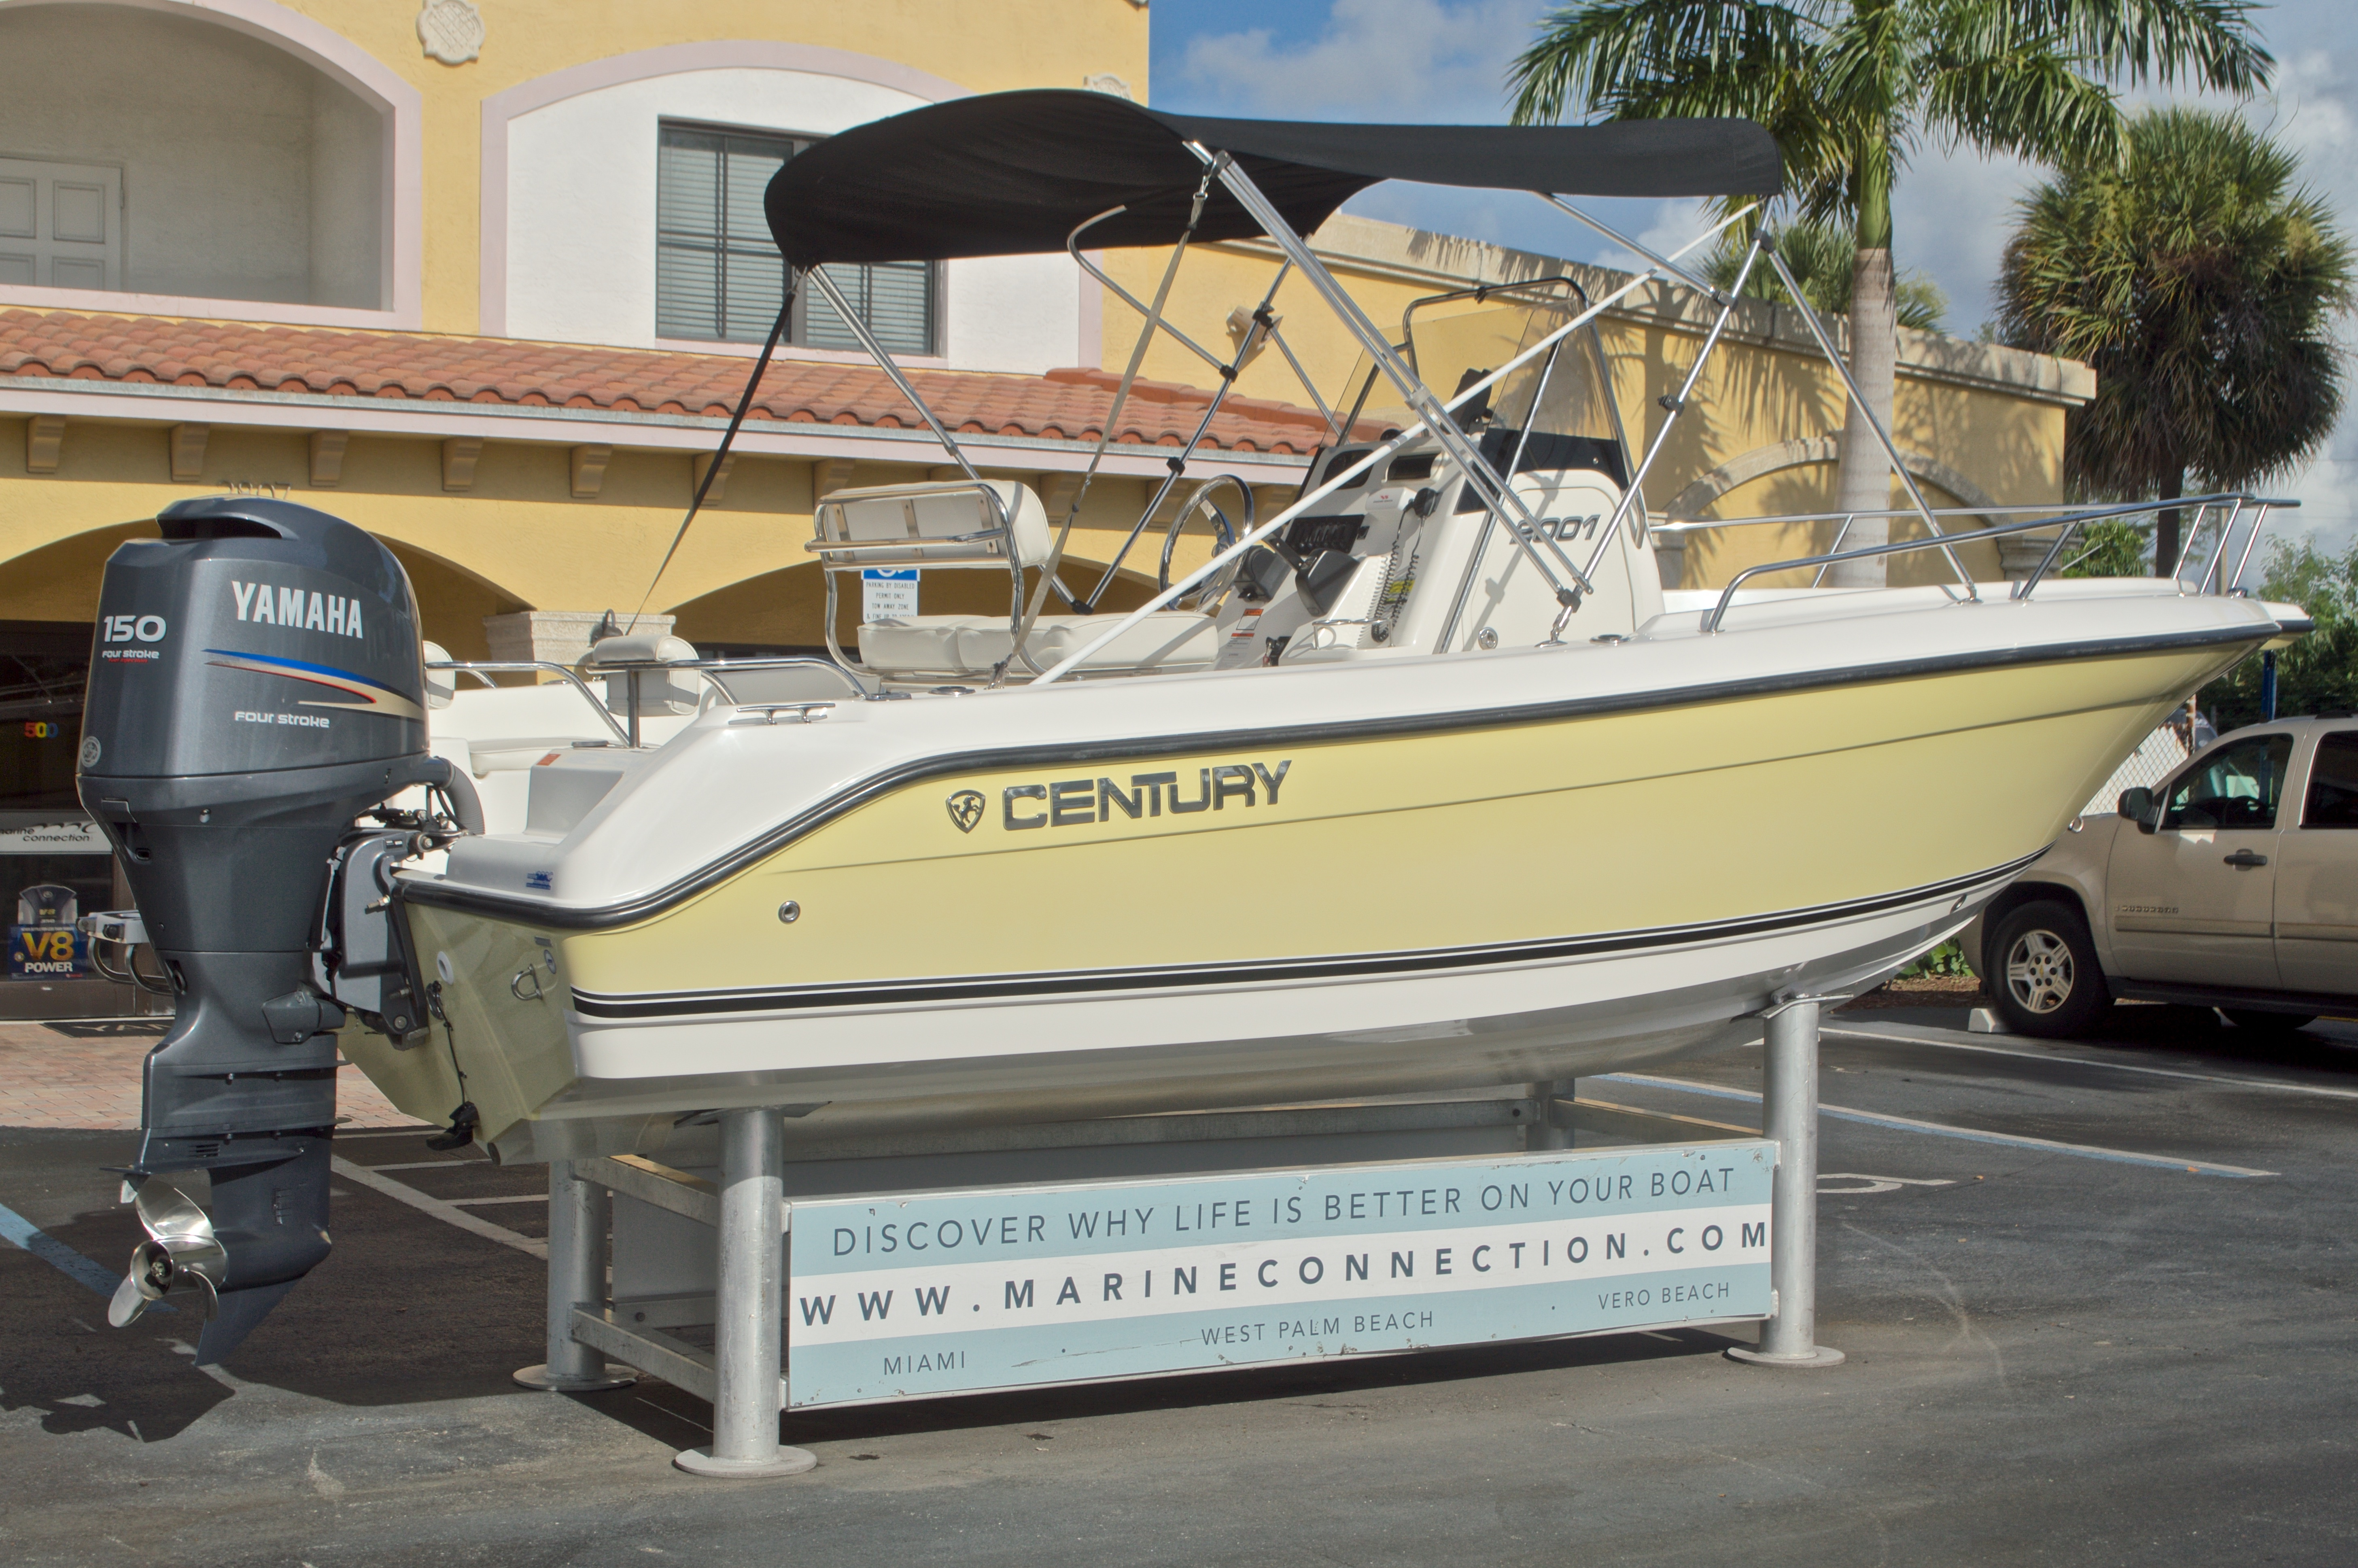 Thumbnail 10 for Used 2007 Century 2001 Center Console boat for sale in West Palm Beach, FL